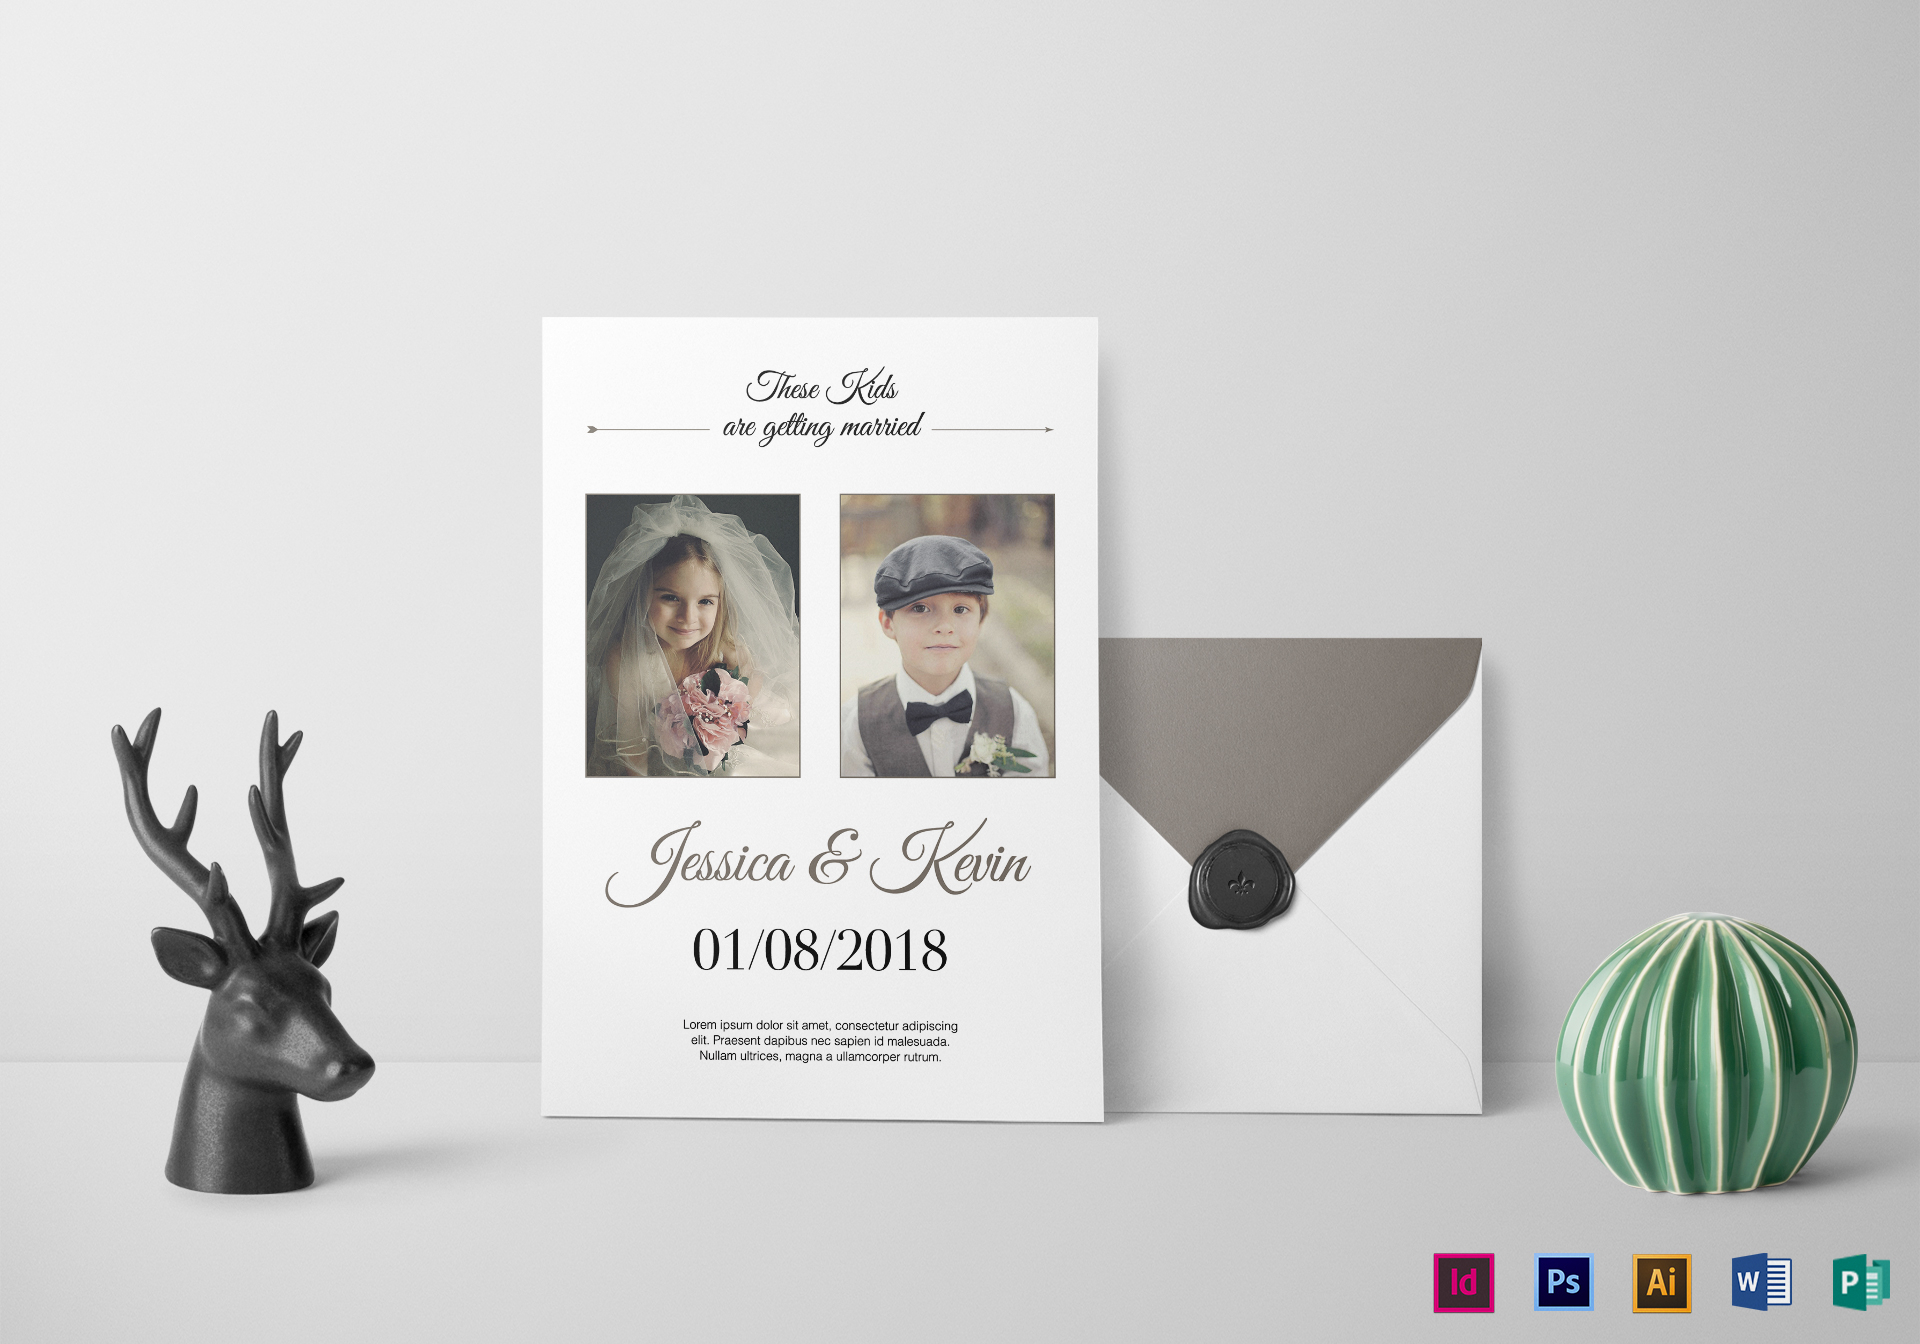 Funny Invitations For Wedding: Funny Wedding Invitation Design Template In PSD, Word